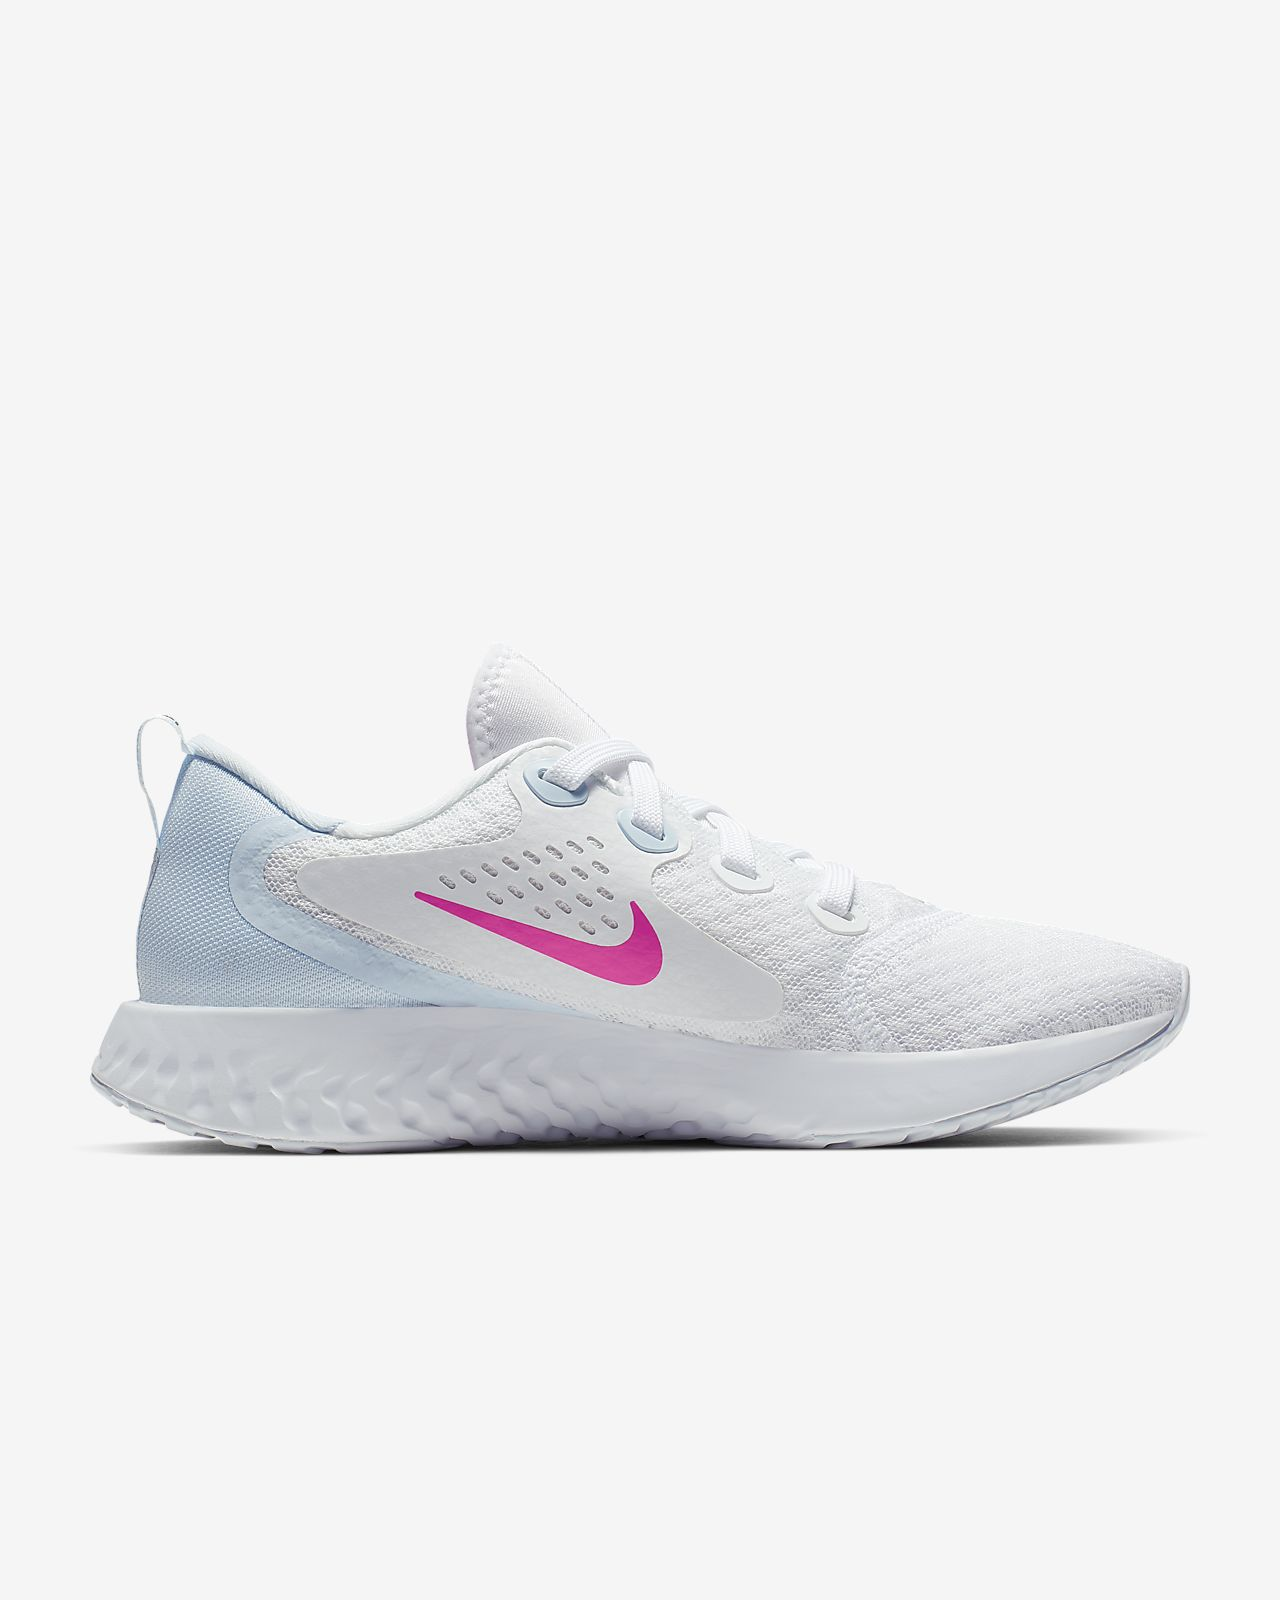 91b9b218da05 Nike Legend React Women s Running Shoe. Nike.com NL